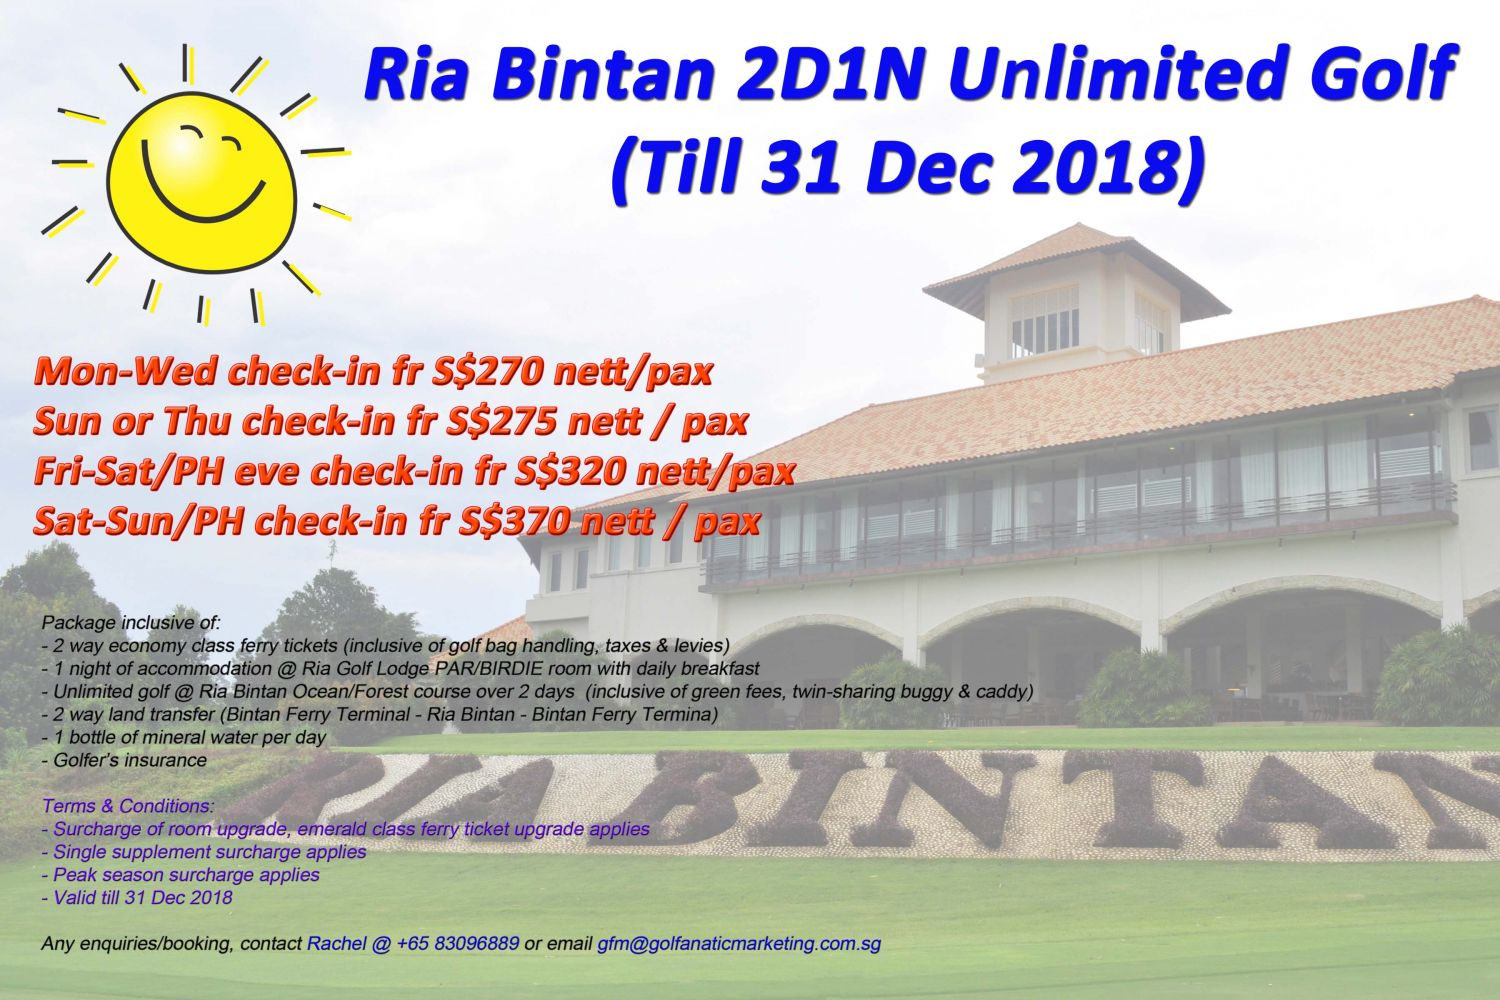 2D1N Ria Bintan Stay & Play Unlimited Golf Package (Till 31